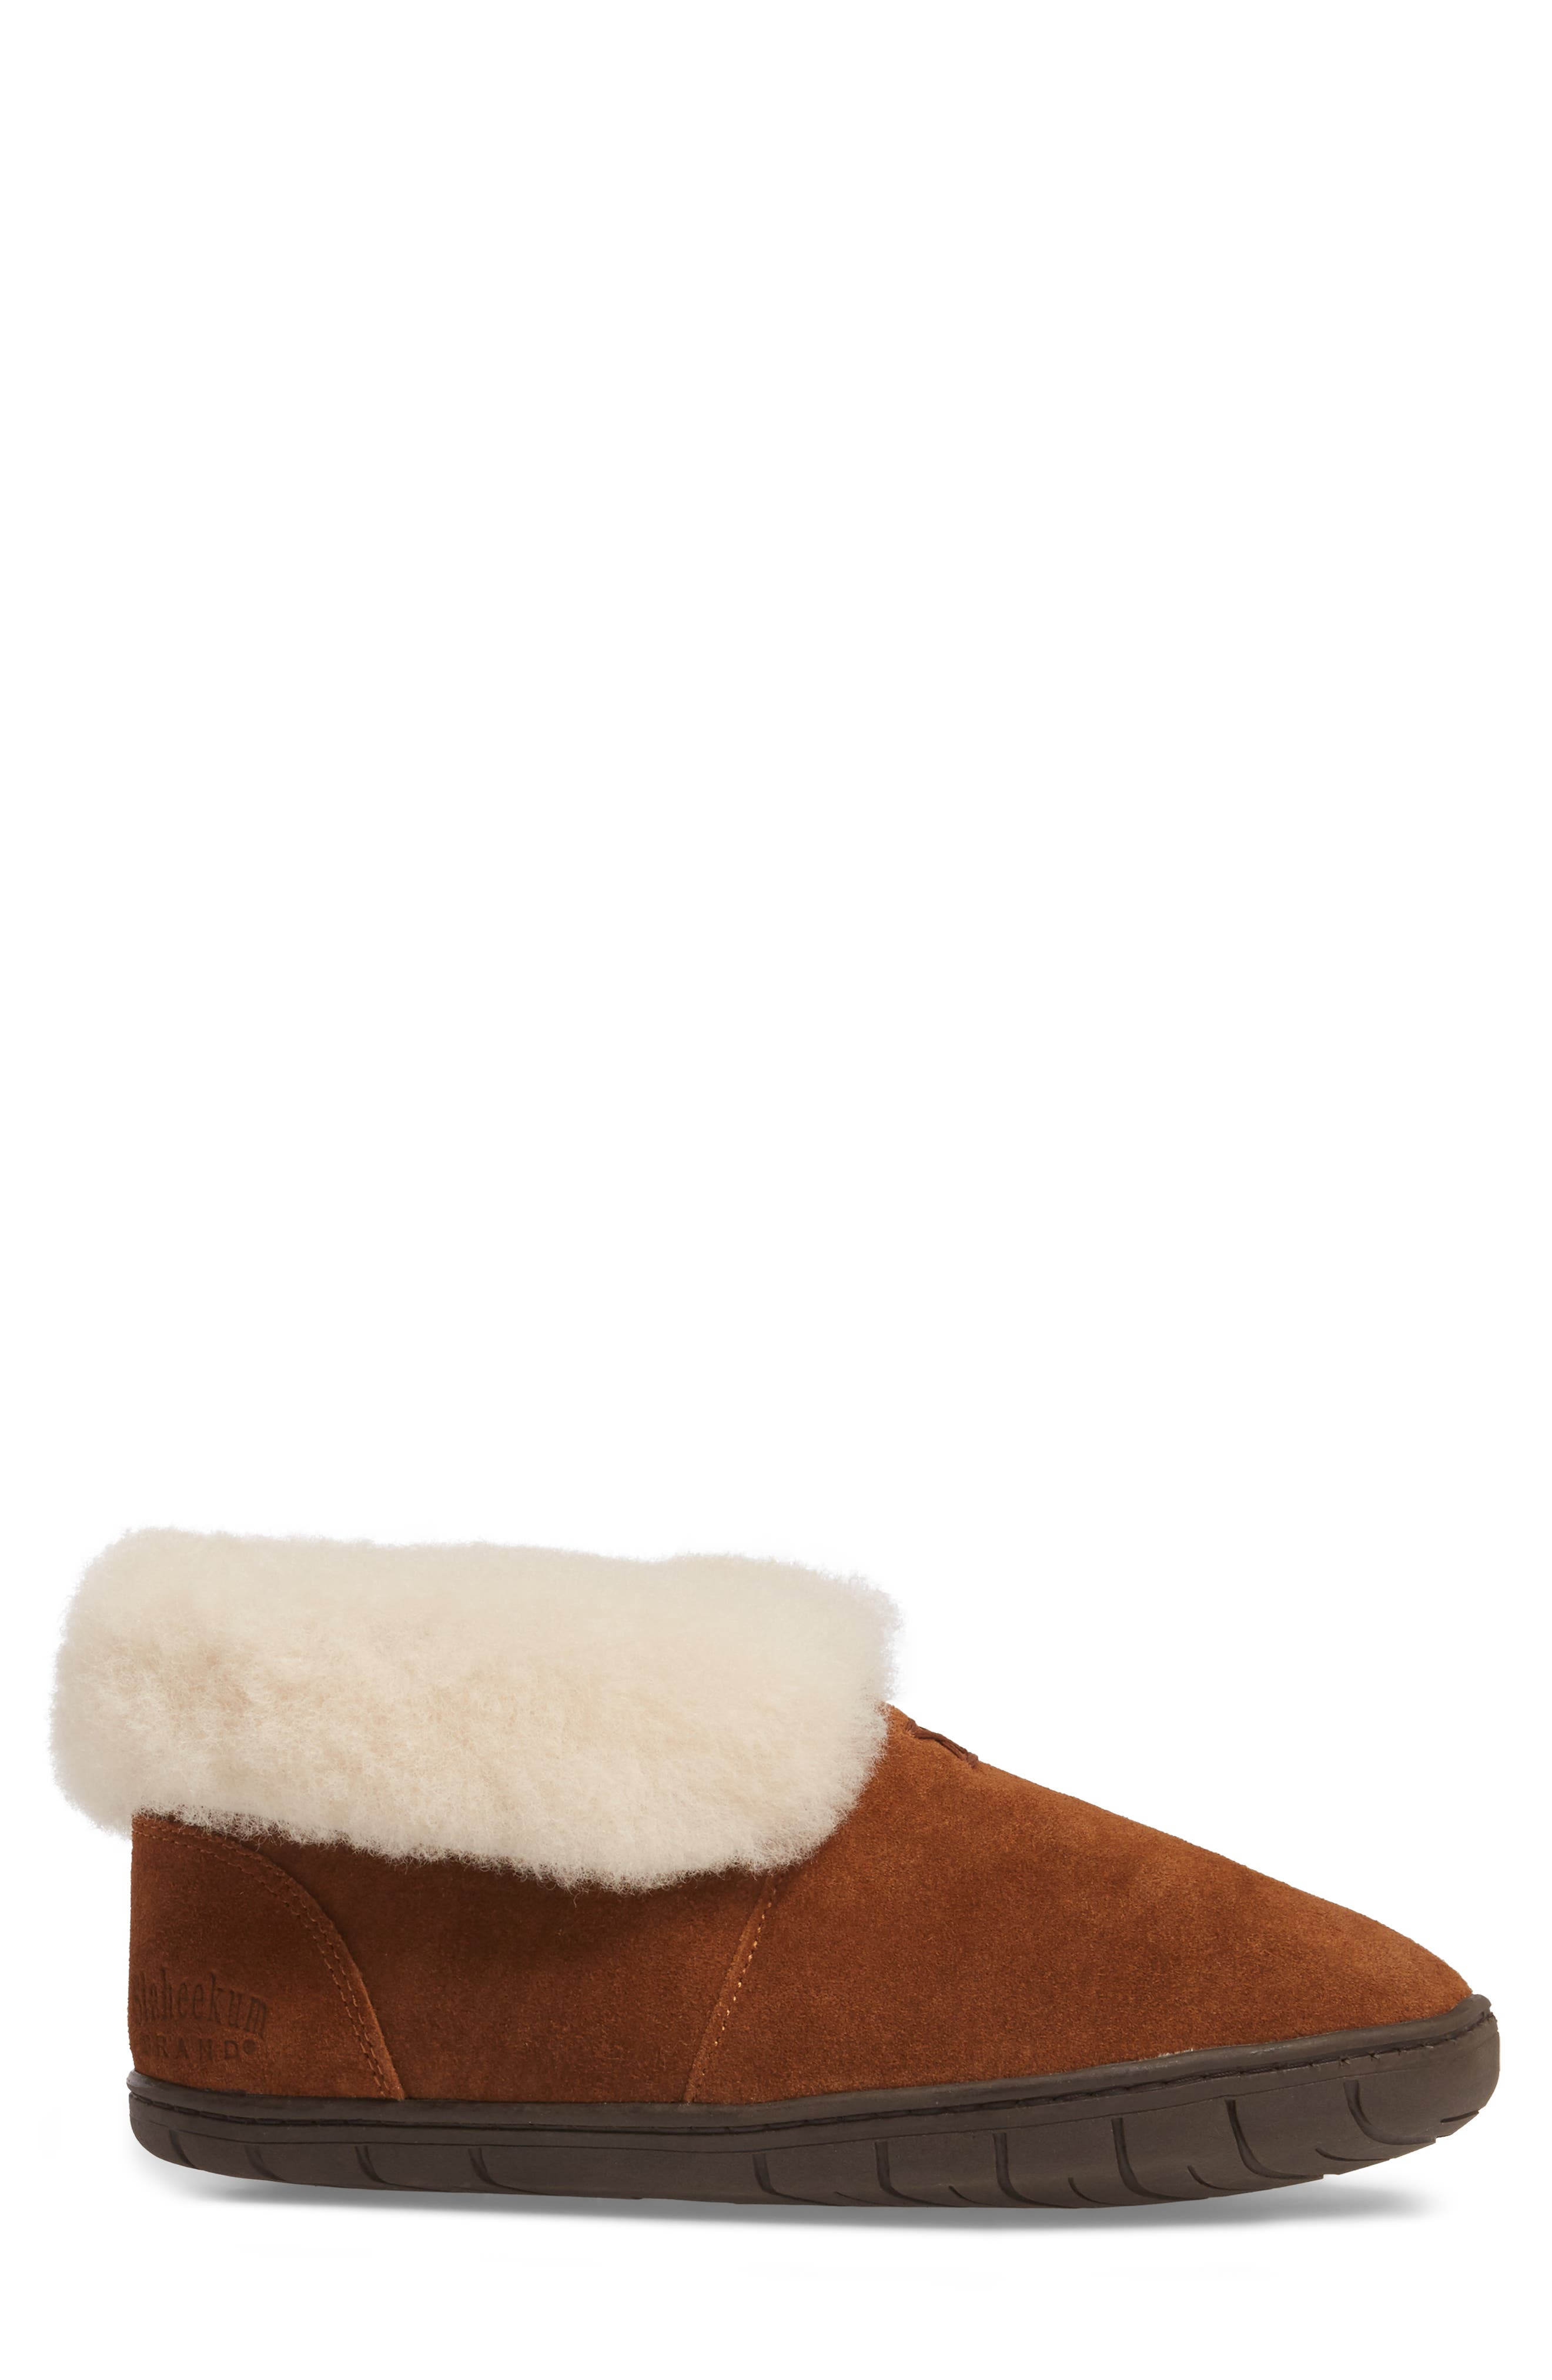 Tundra Slipper Bootie with Genuine Shearling Lining,                             Alternate thumbnail 3, color,                             212